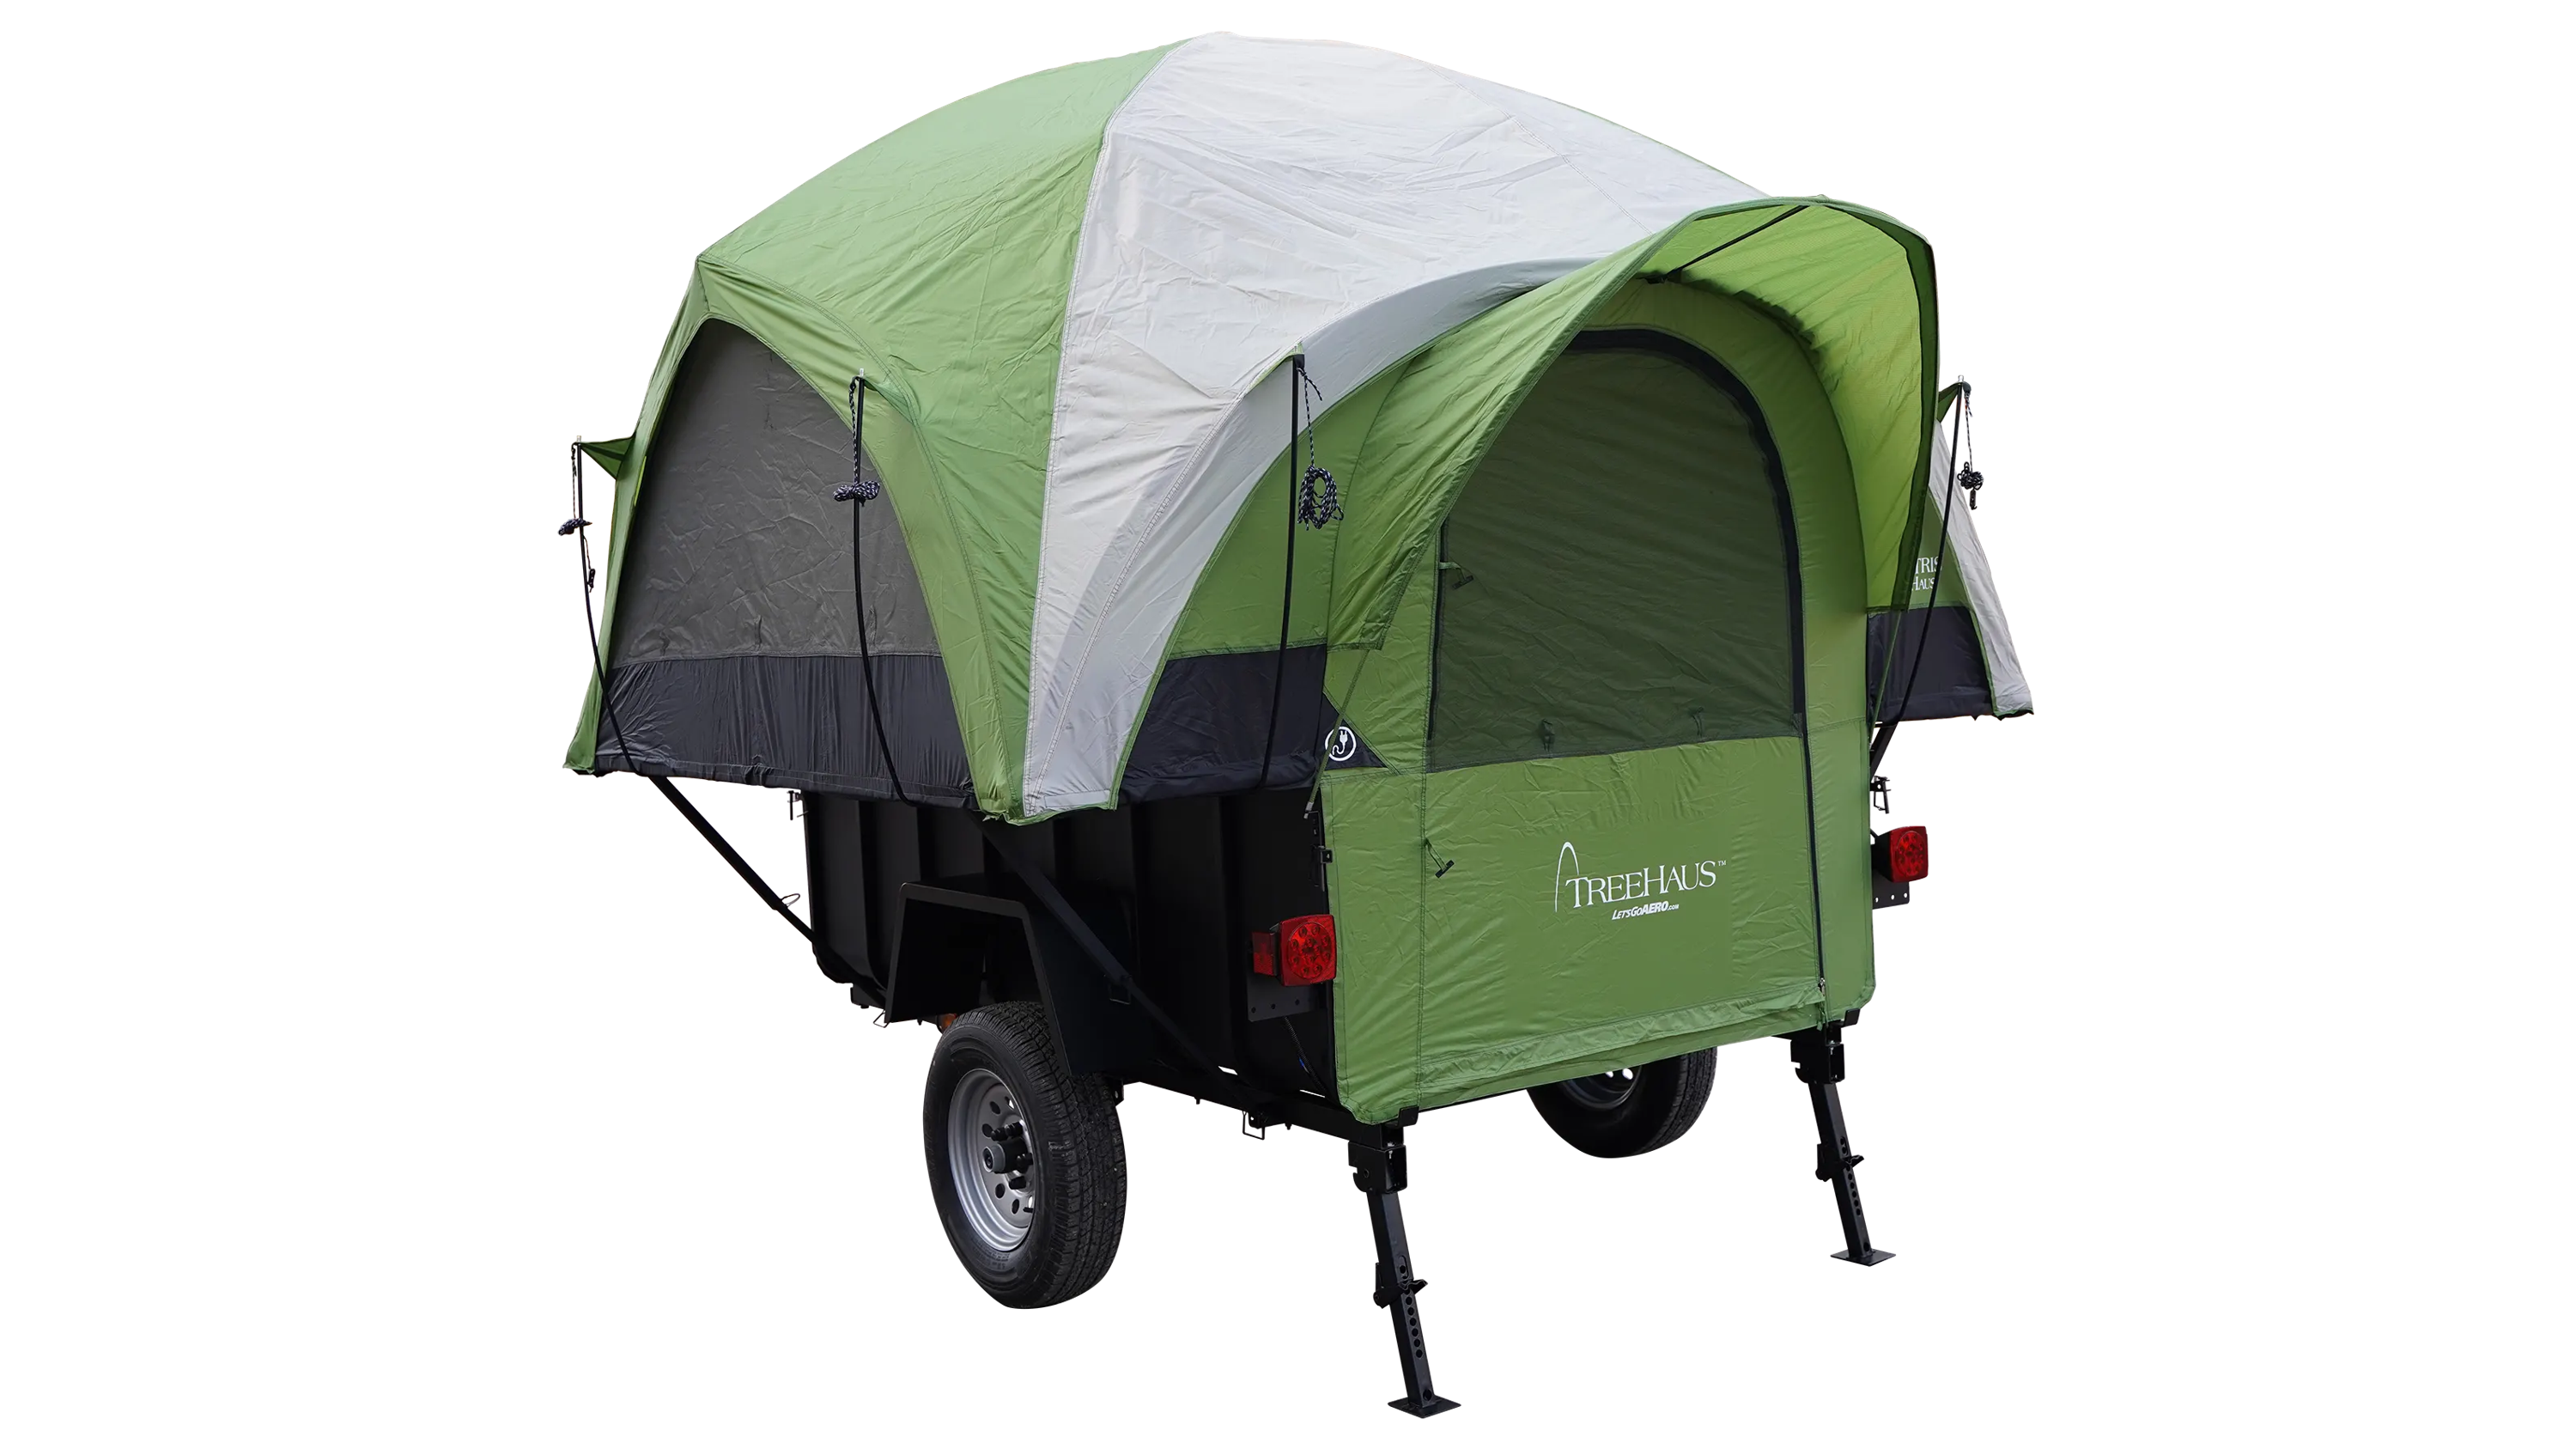 LittleGiant Trailer with TreeHaus Camper